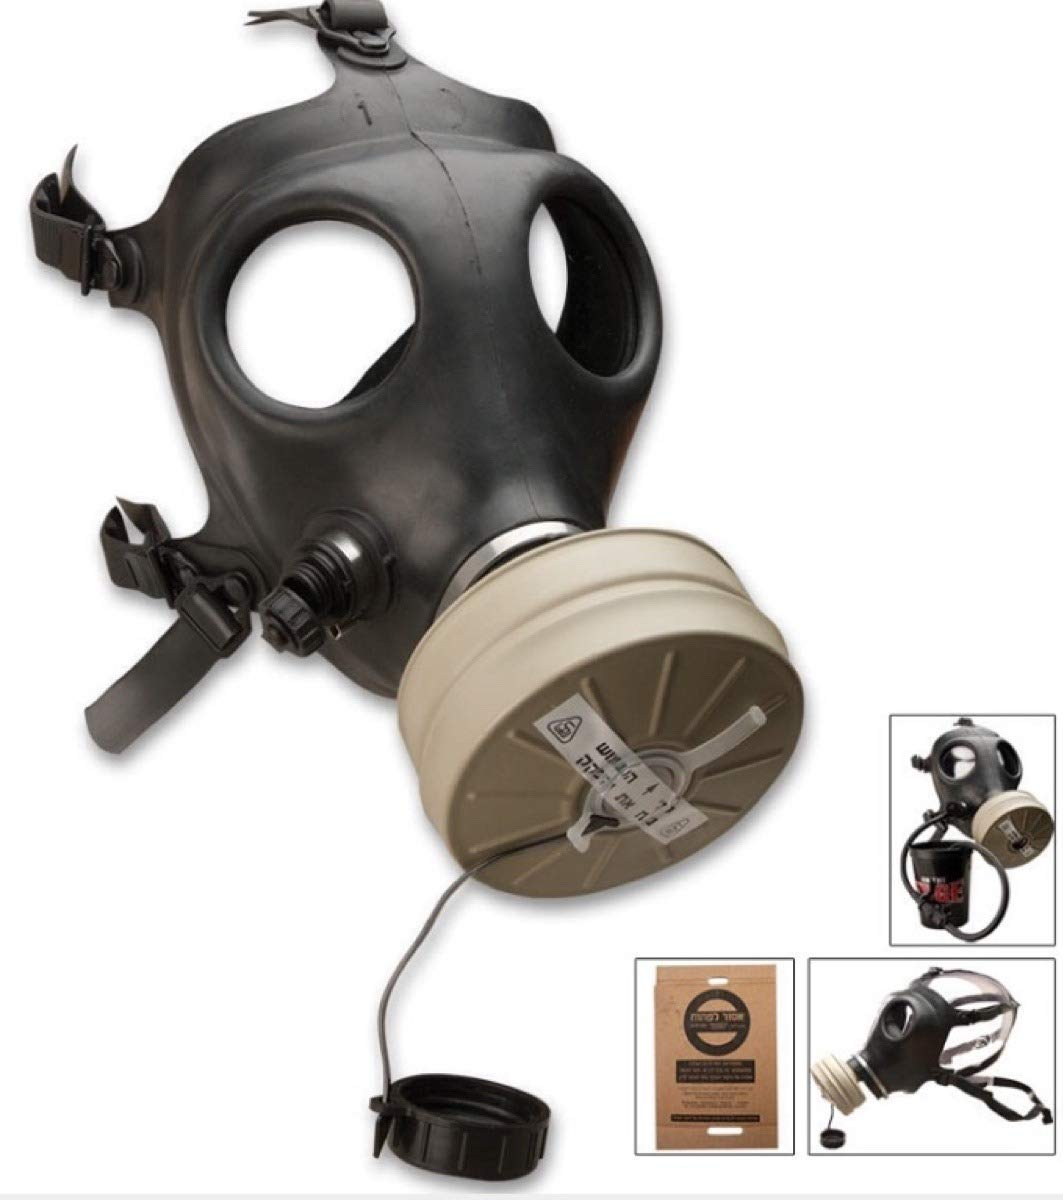 Israeli Rubber Respirator Mask NBC Protection For Industrial Use, Chemical Handling, Painting, Welding, Prepping with Drinking Straw/Tube Shalon